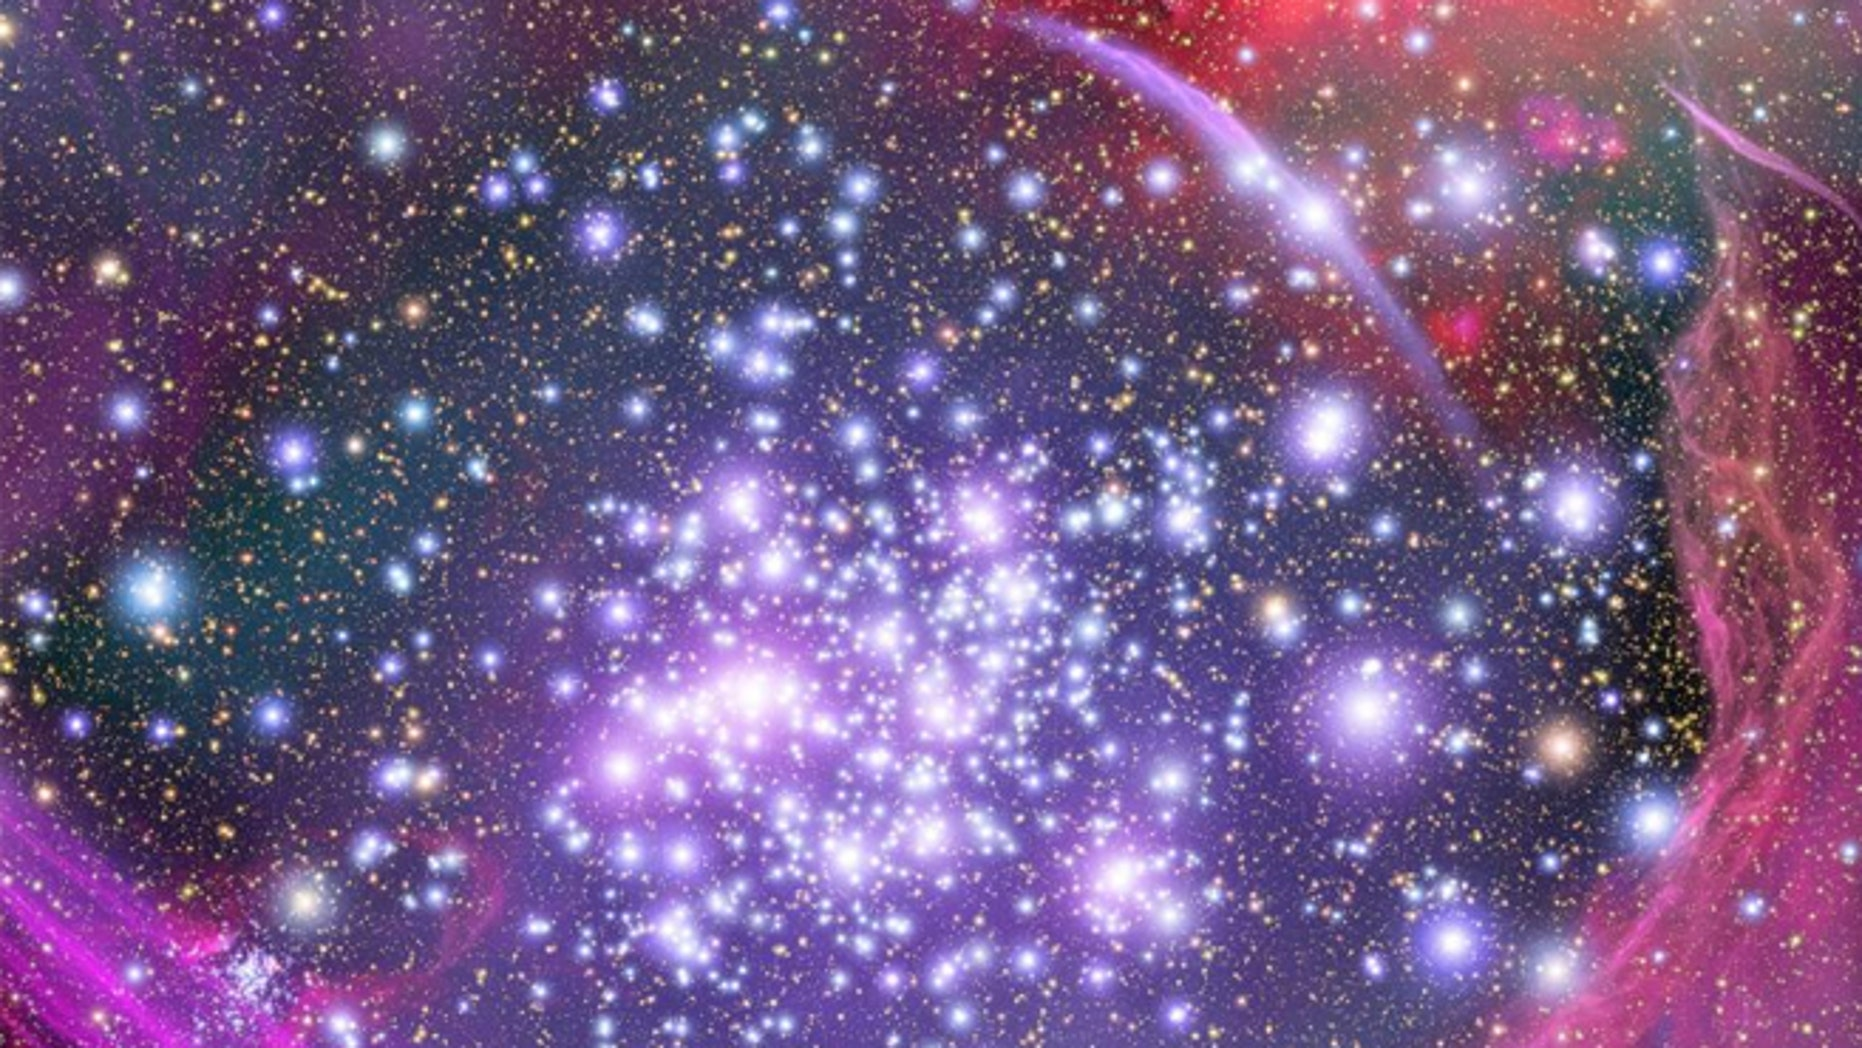 An artist's impression shows how the Arches star cluster appears from deep inside the hub of our Milky Way Galaxy. A new study suggests that there are 60 billion planets in the Milky Way that support plant life.